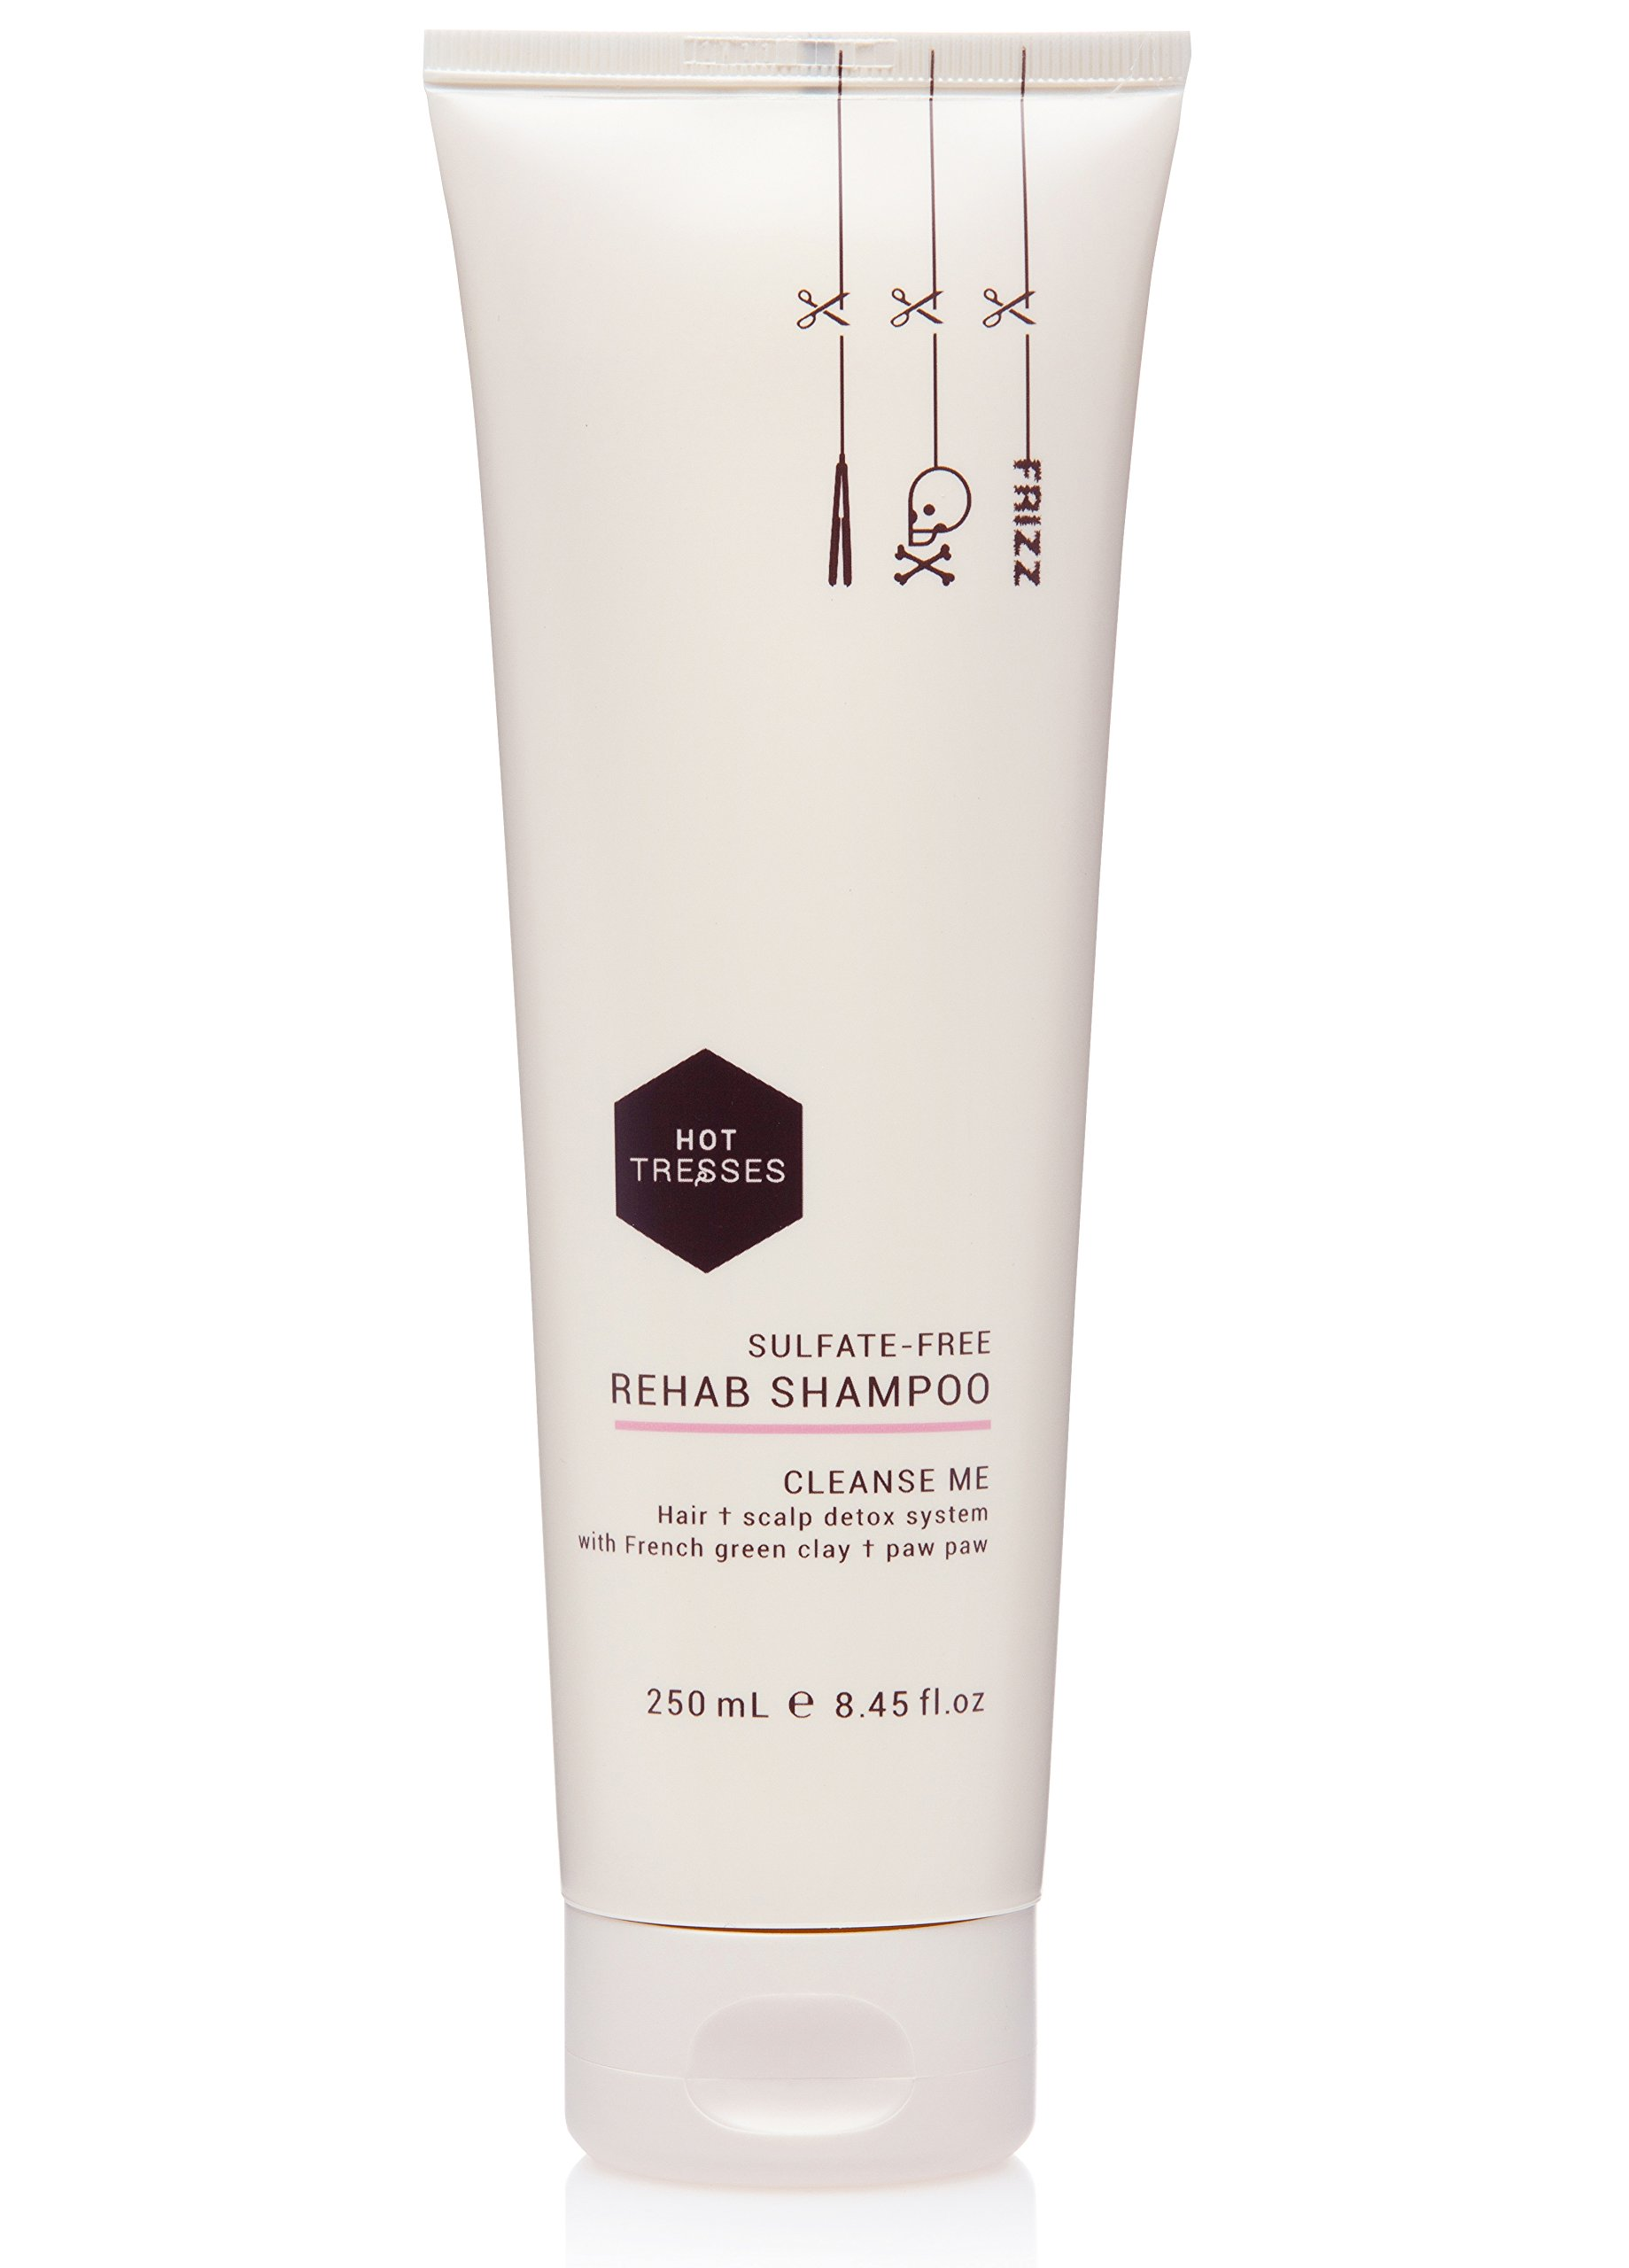 Natural Vegan and Cruelty Free Shampoo ::: Sulfate-Free Rehab Shampoo, 8.45 fl.oz ::: Sulfate Free and Paraben Free by Hot Tresses